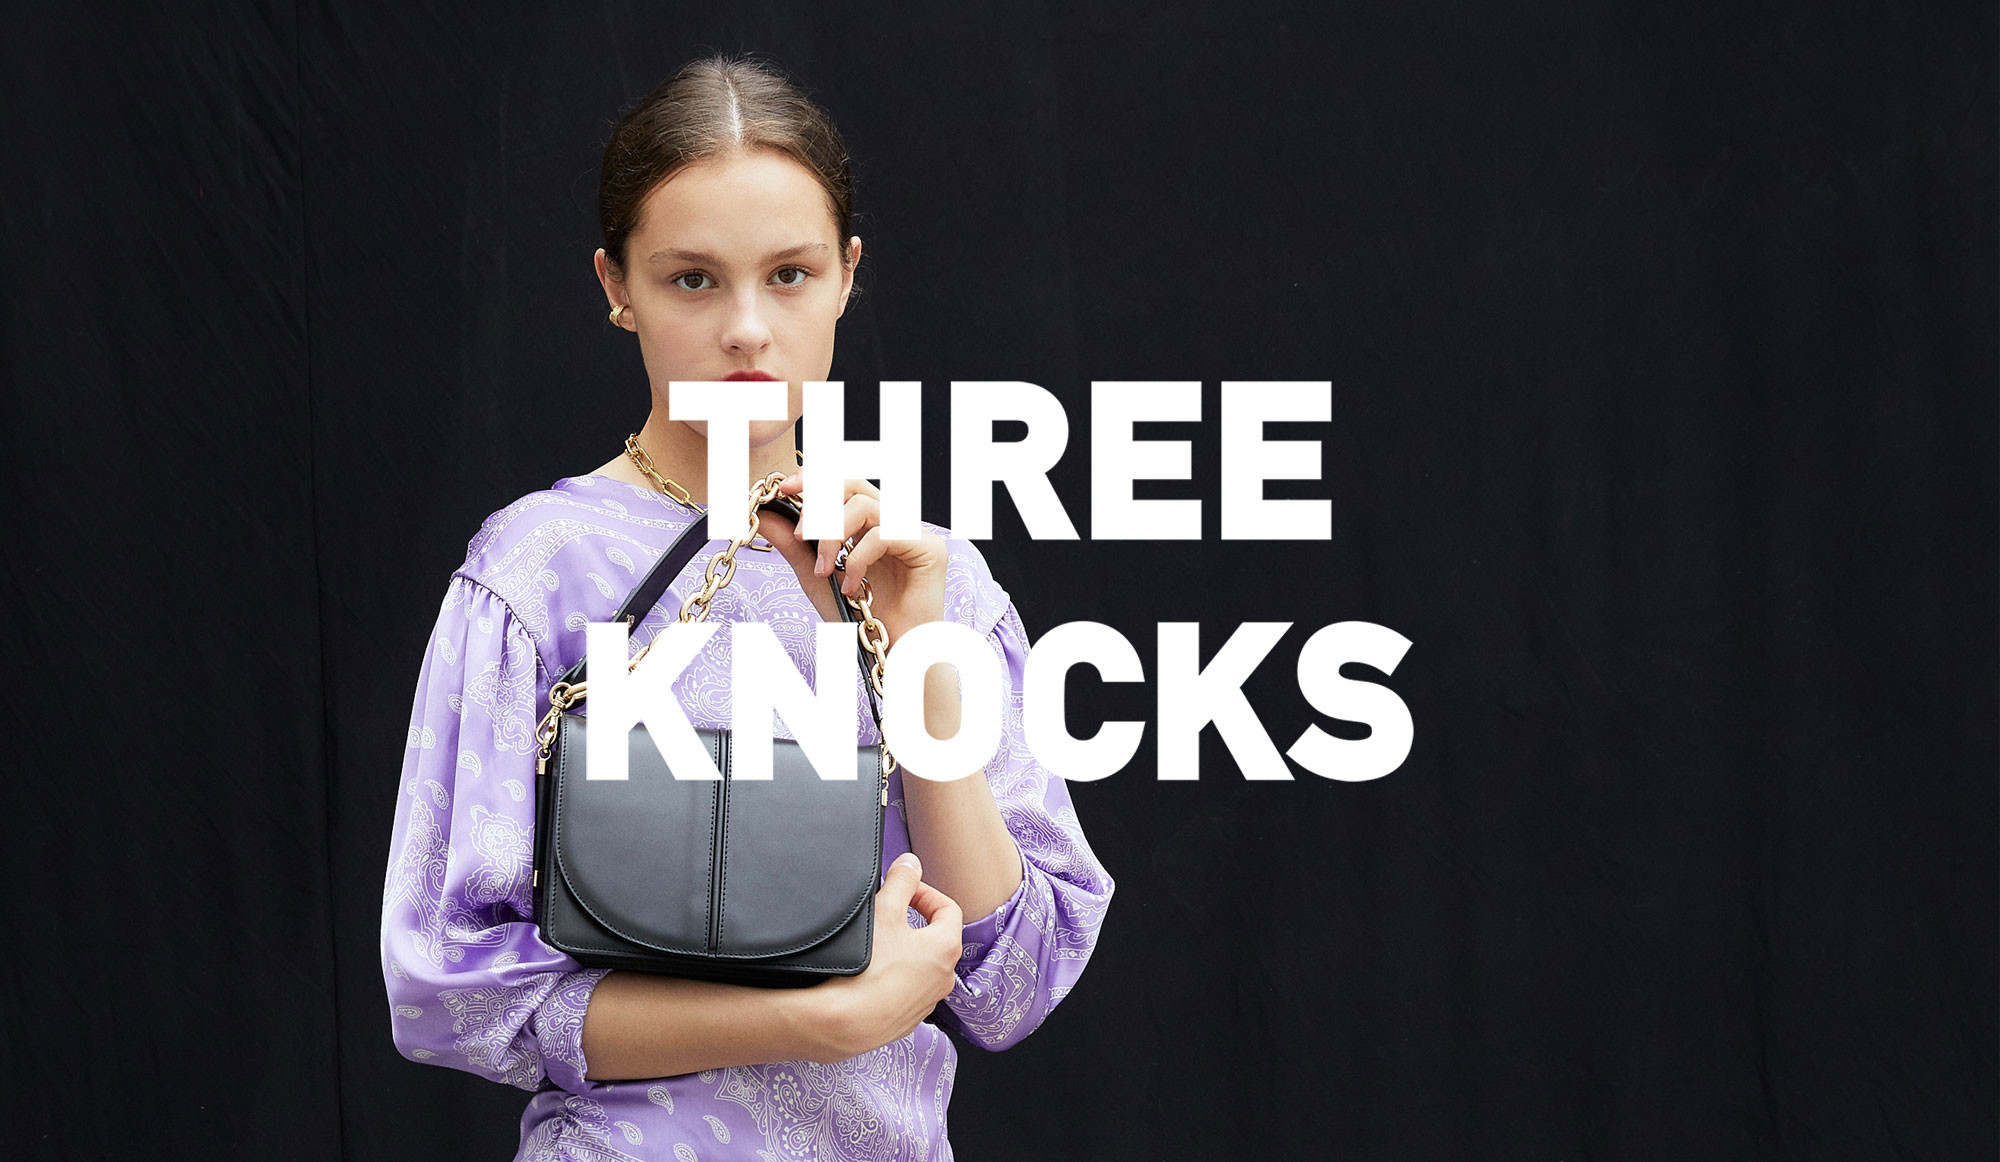 THREE KNOCKS